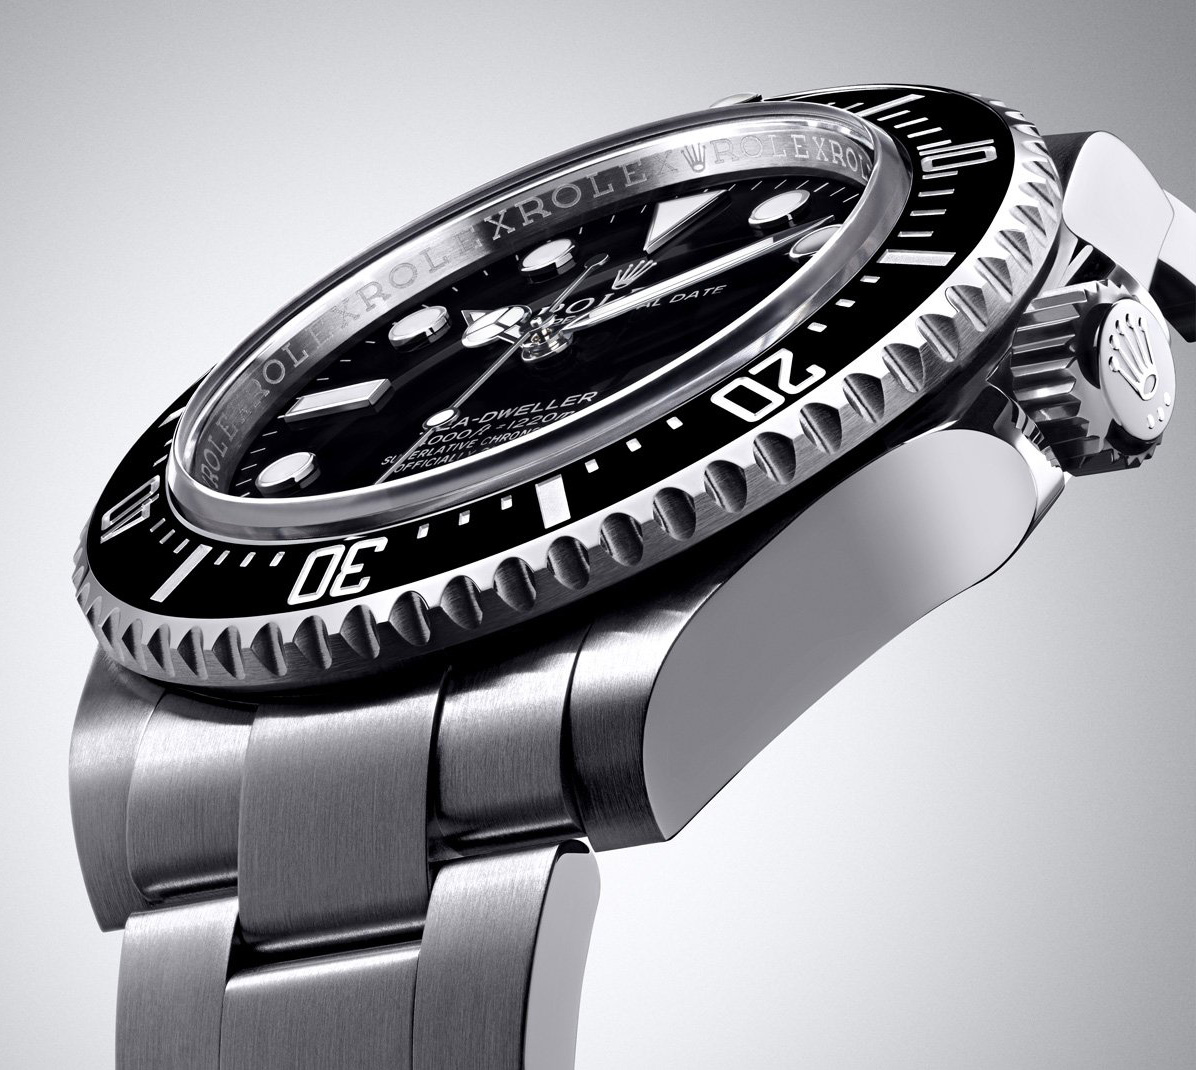 Rolex Sea-Dweller 4000 - Bezel